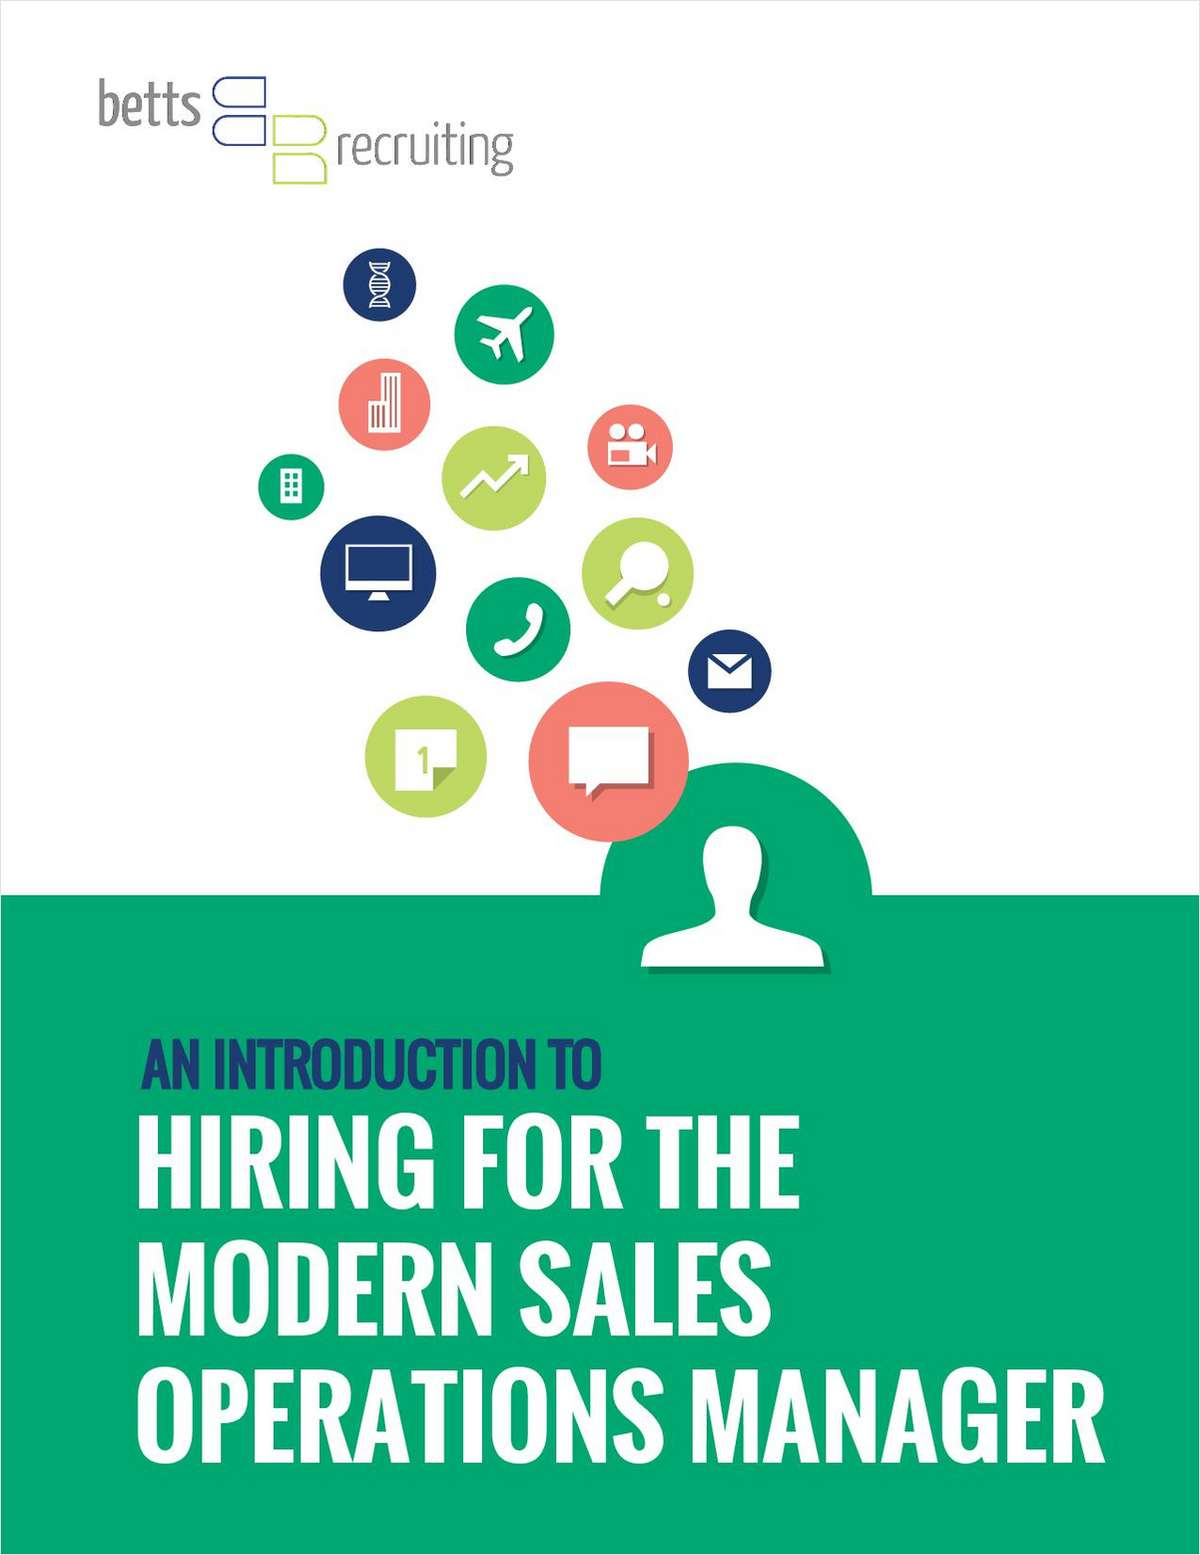 An Introduction to Hiring For the Modern Sales Operations Manager